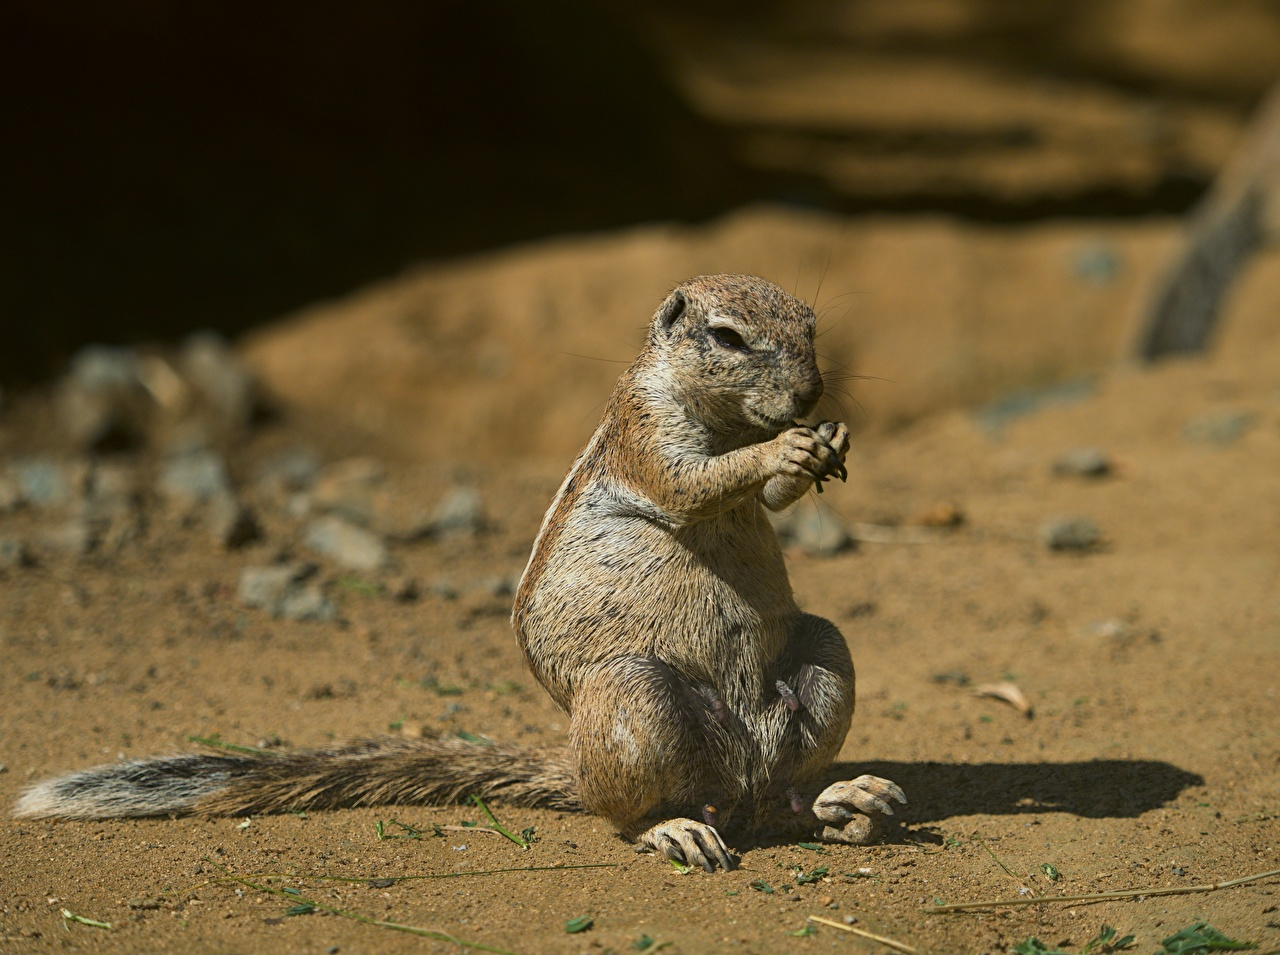 Image Rodents Gophers Bokeh animal blurred background Animals